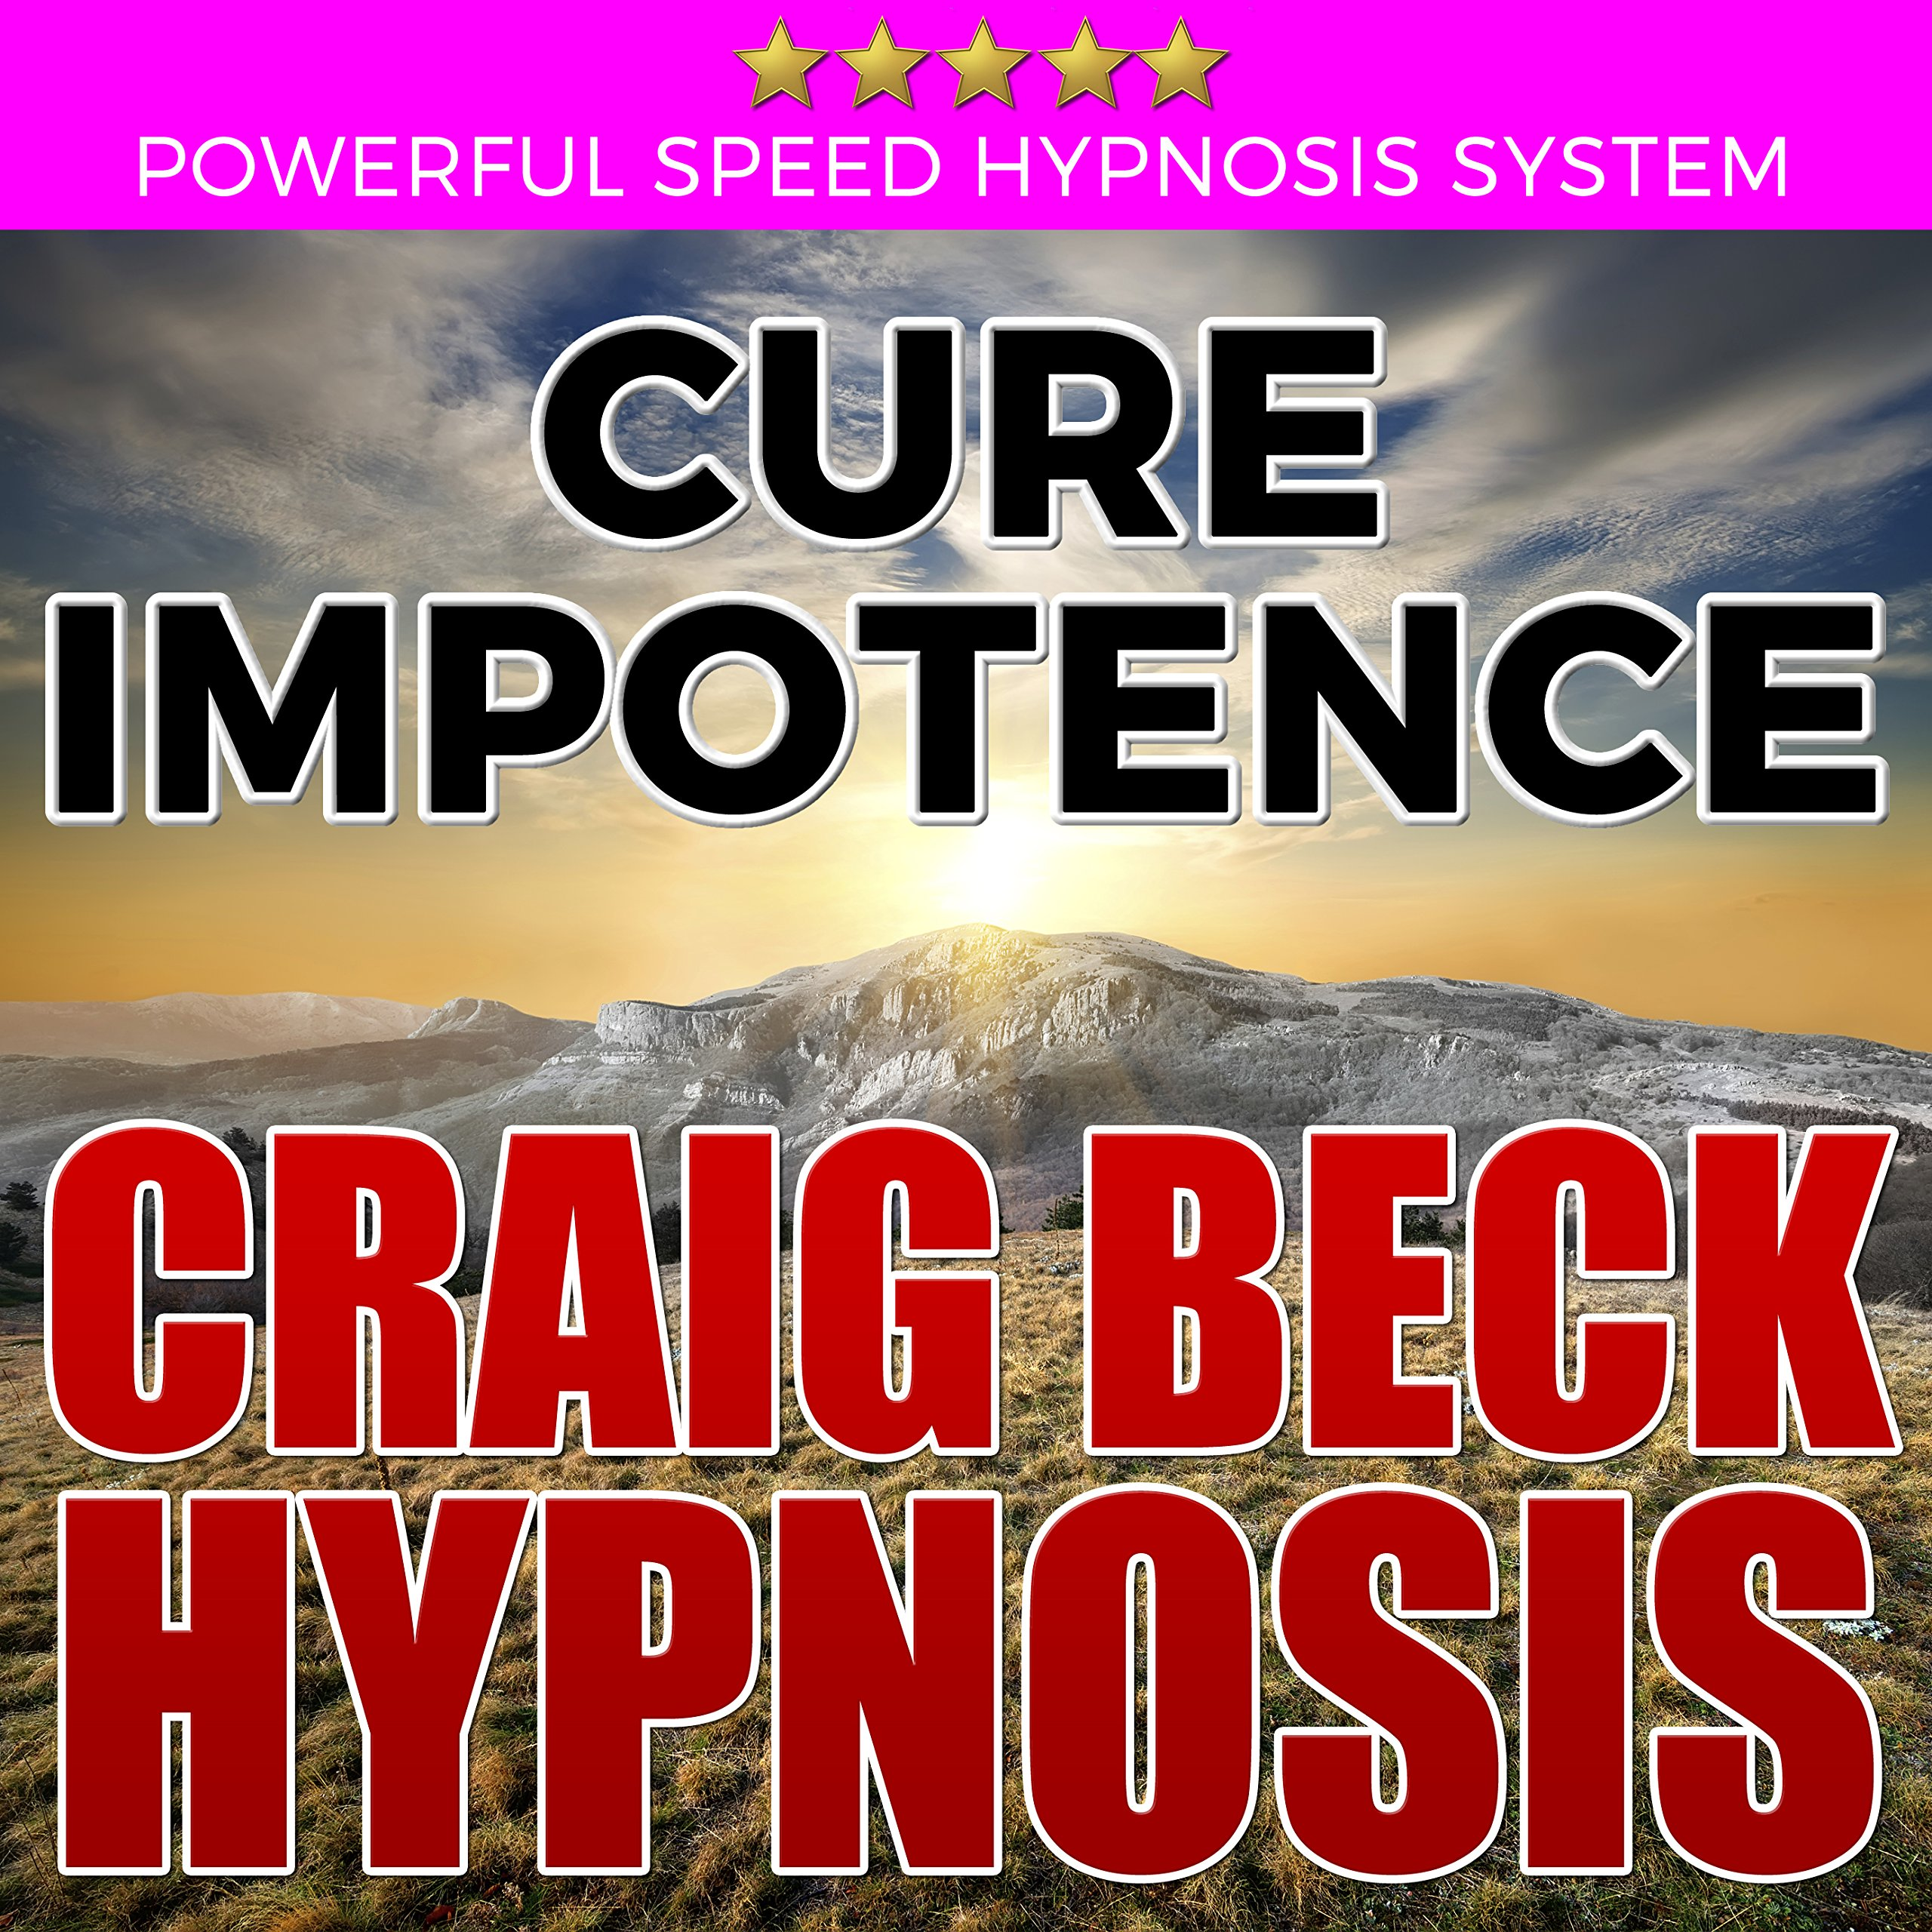 Cure Impotence  Craig Beck Hypnosis